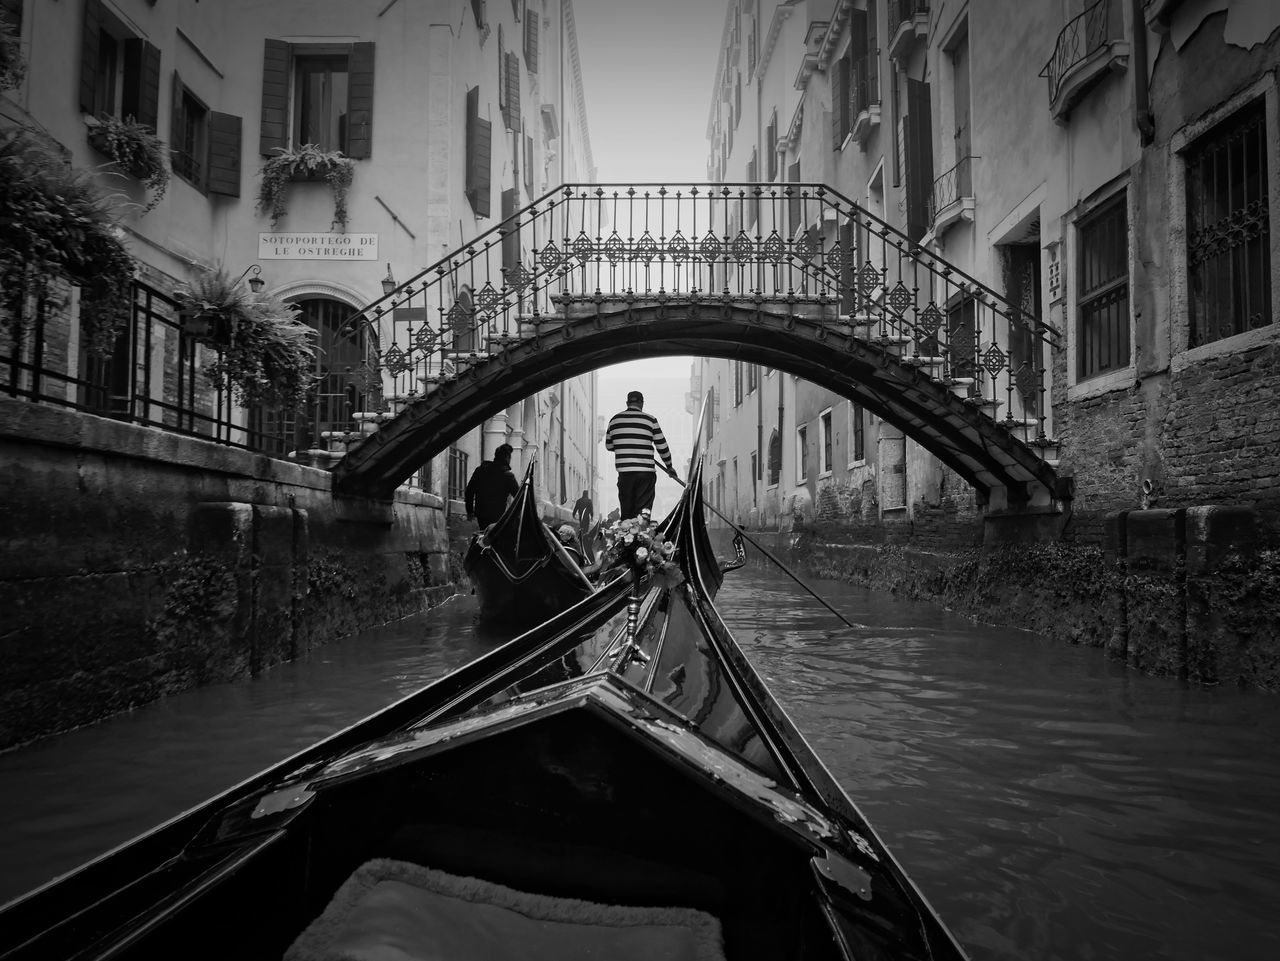 canal, gondola - traditional boat, architecture, built structure, water, building exterior, transportation, gondola, gondolier, nautical vessel, bridge - man made structure, day, mode of transport, travel destinations, outdoors, real people, men, rowing, city, people